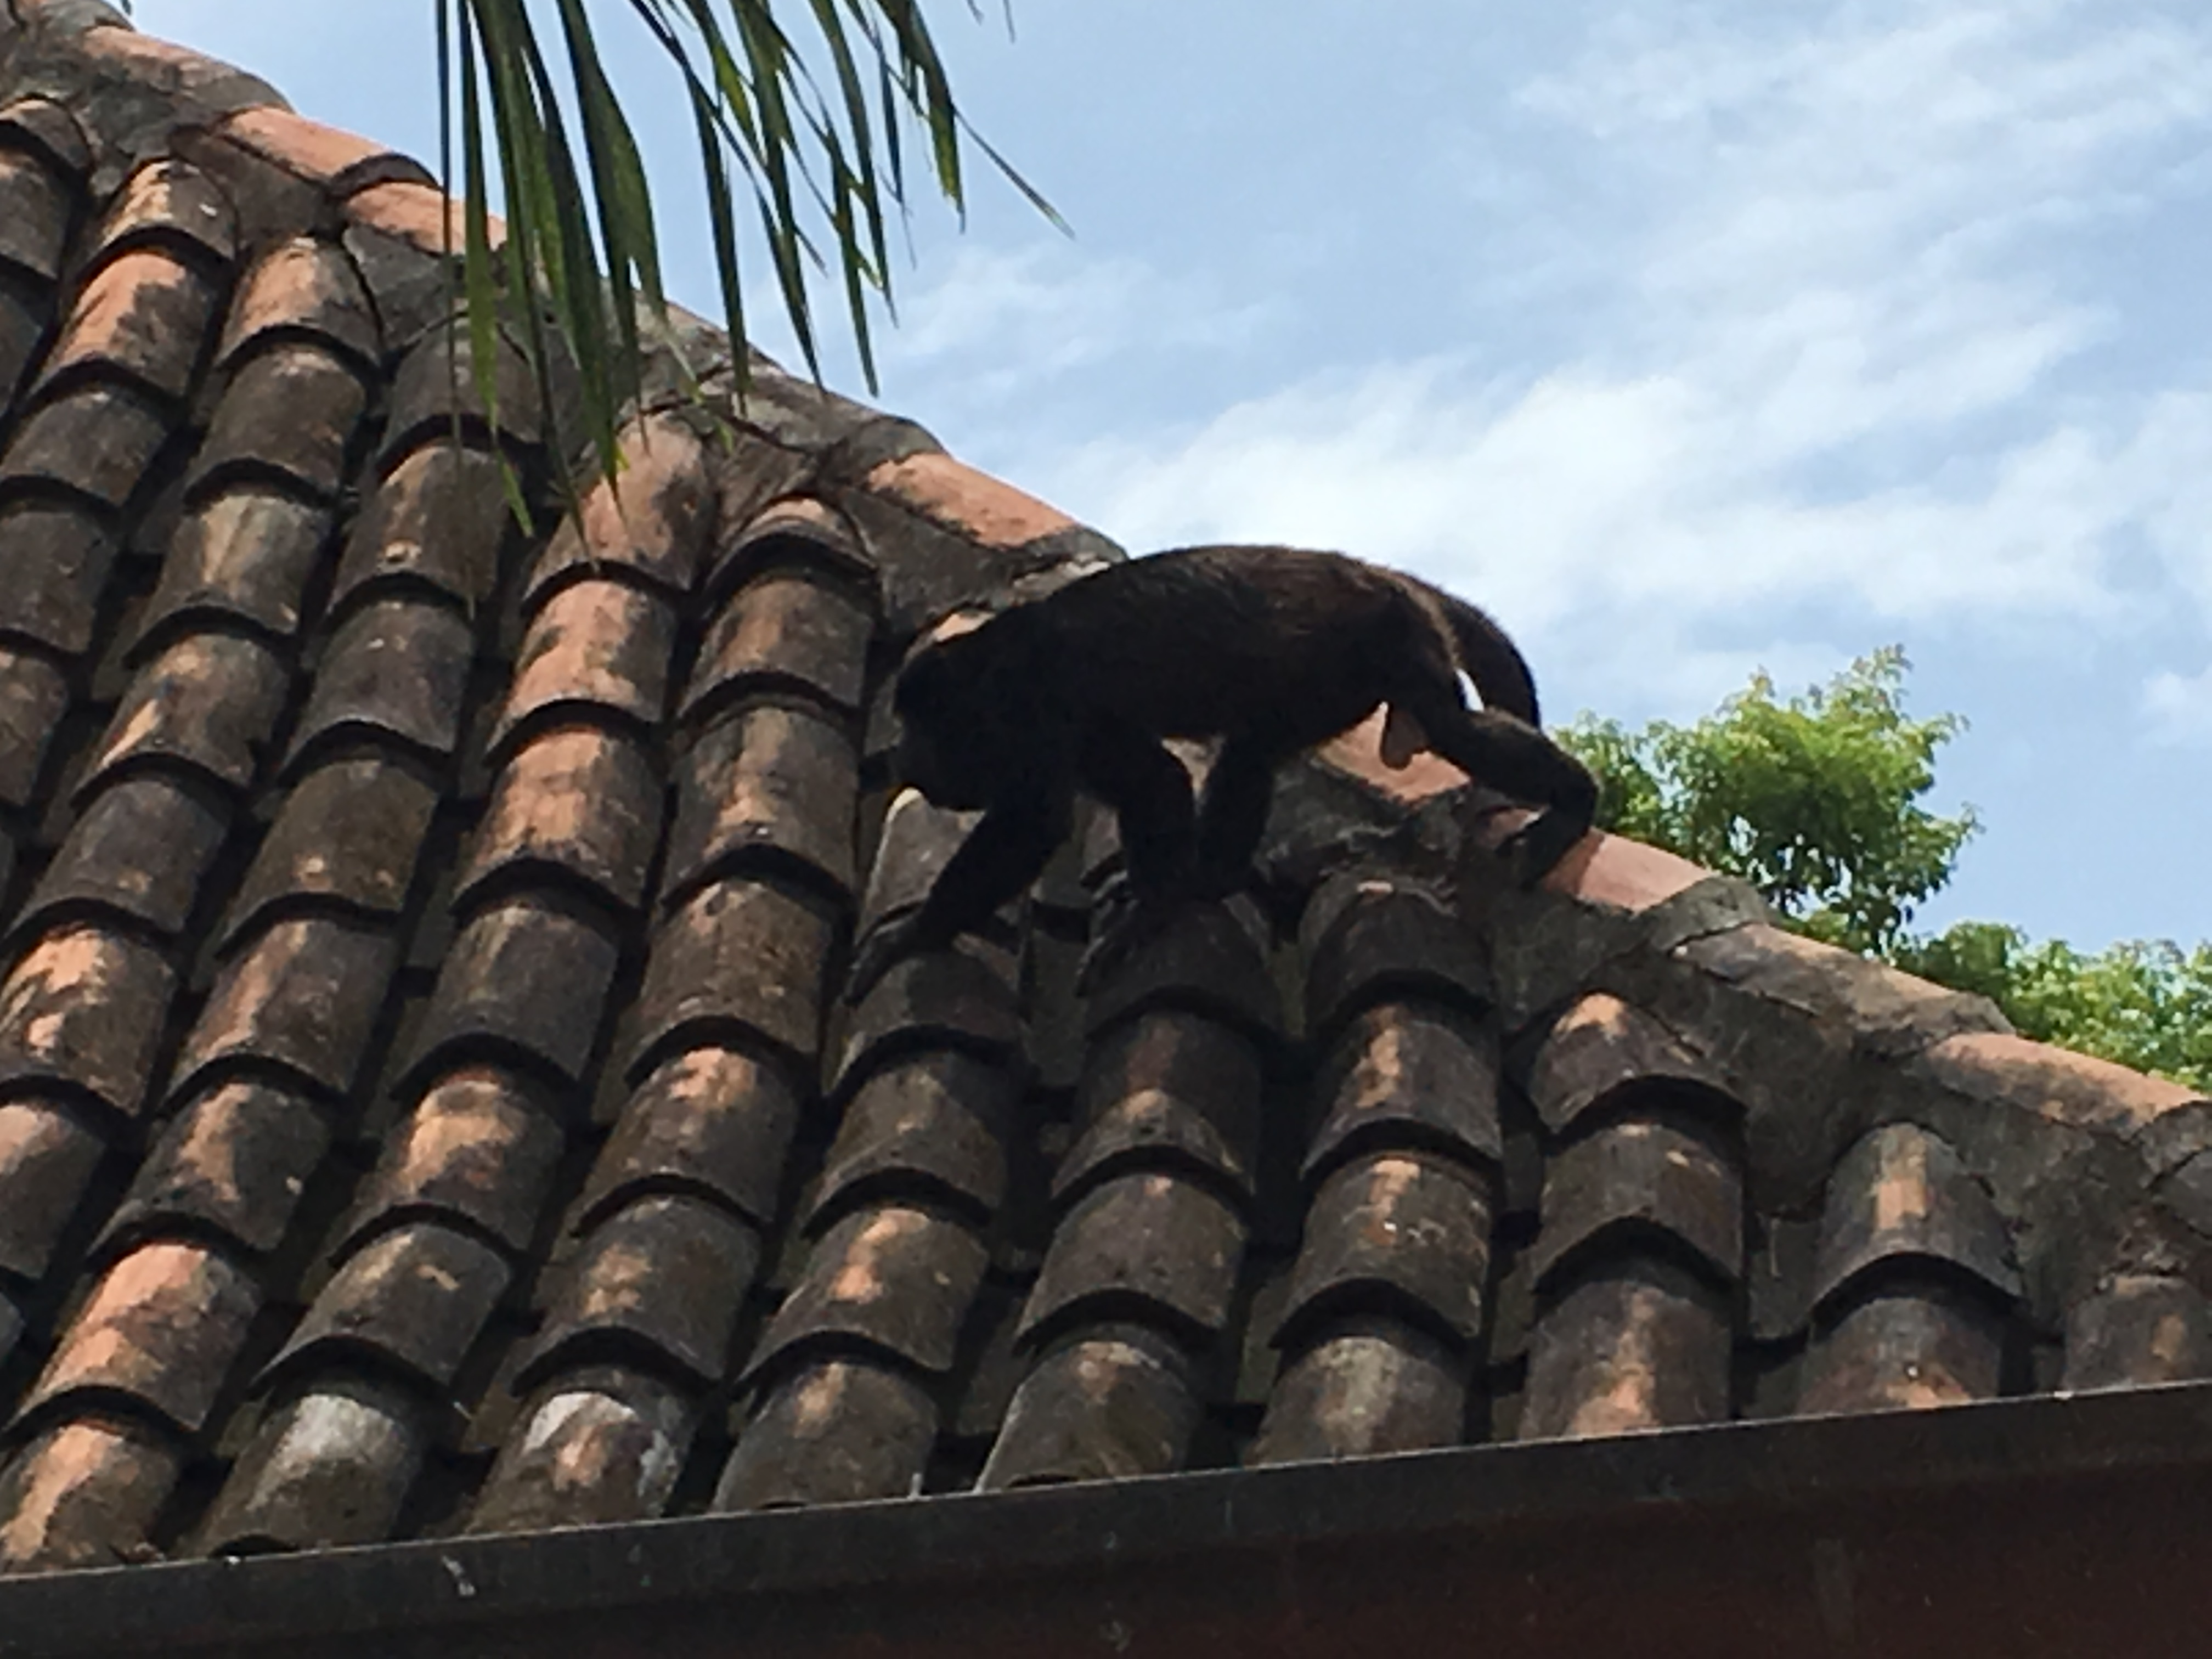 Howler monkey on a roof